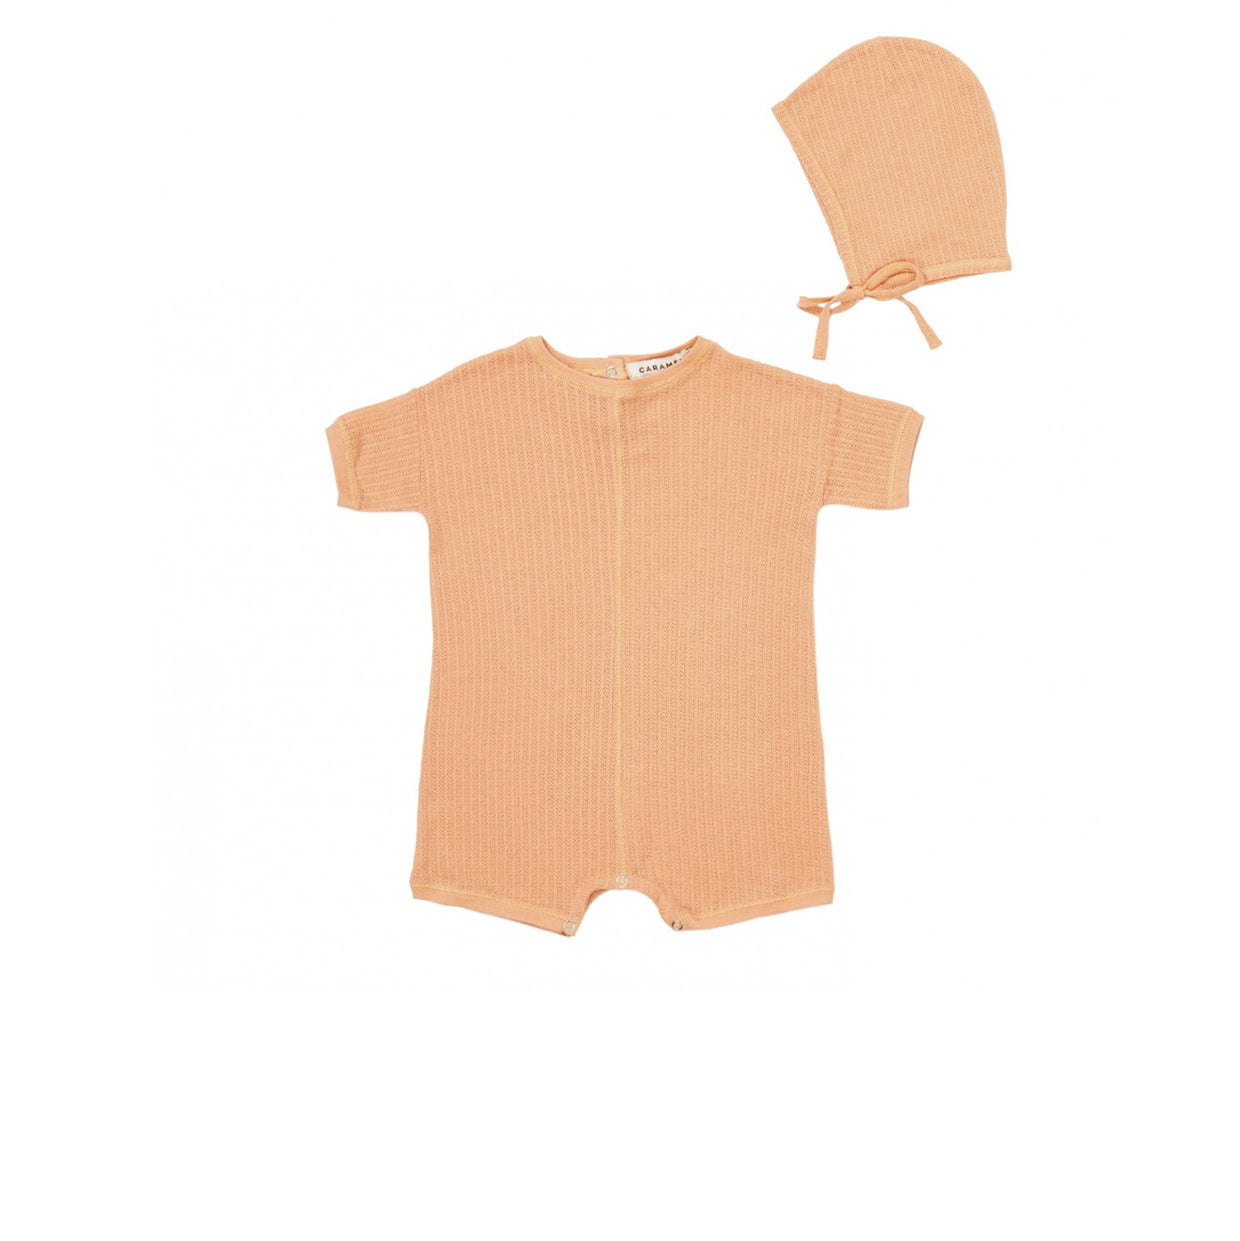 Caramel London Seneca Baby Gift Set in Coral Pink | BIEN BIEN